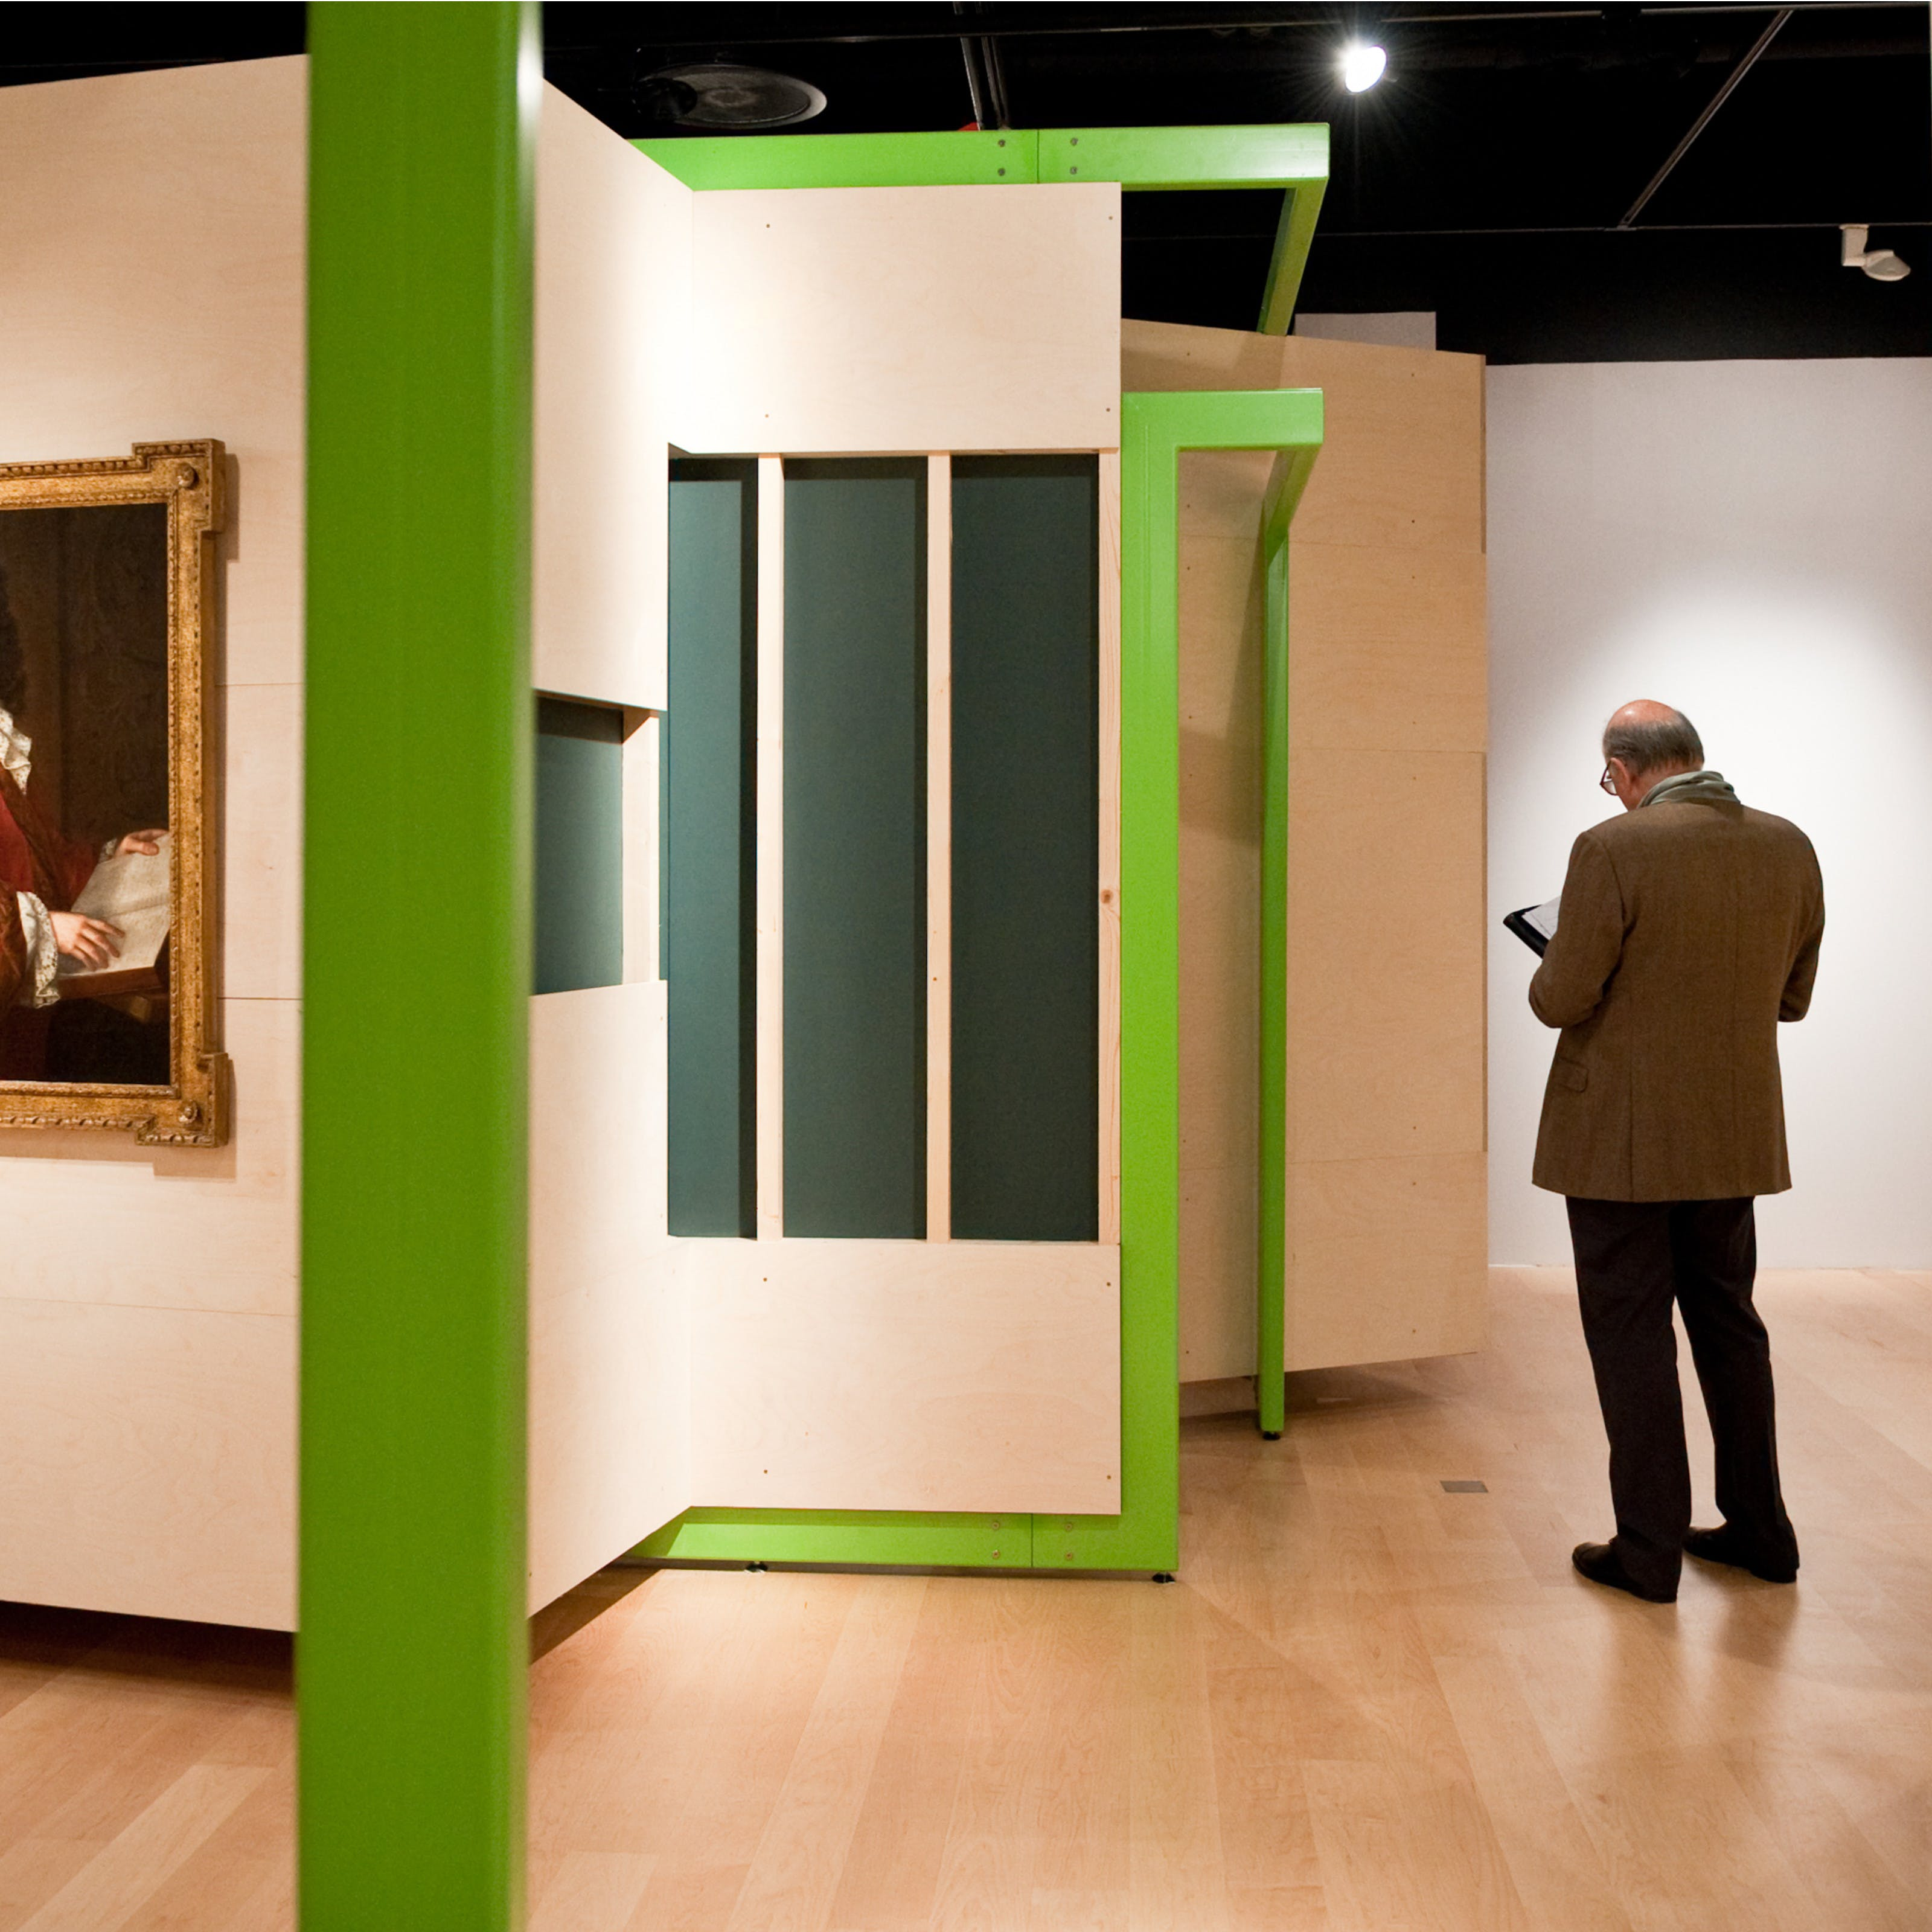 Photograph of a visitor exploring the Identity exhibition at Wellcome Collection.